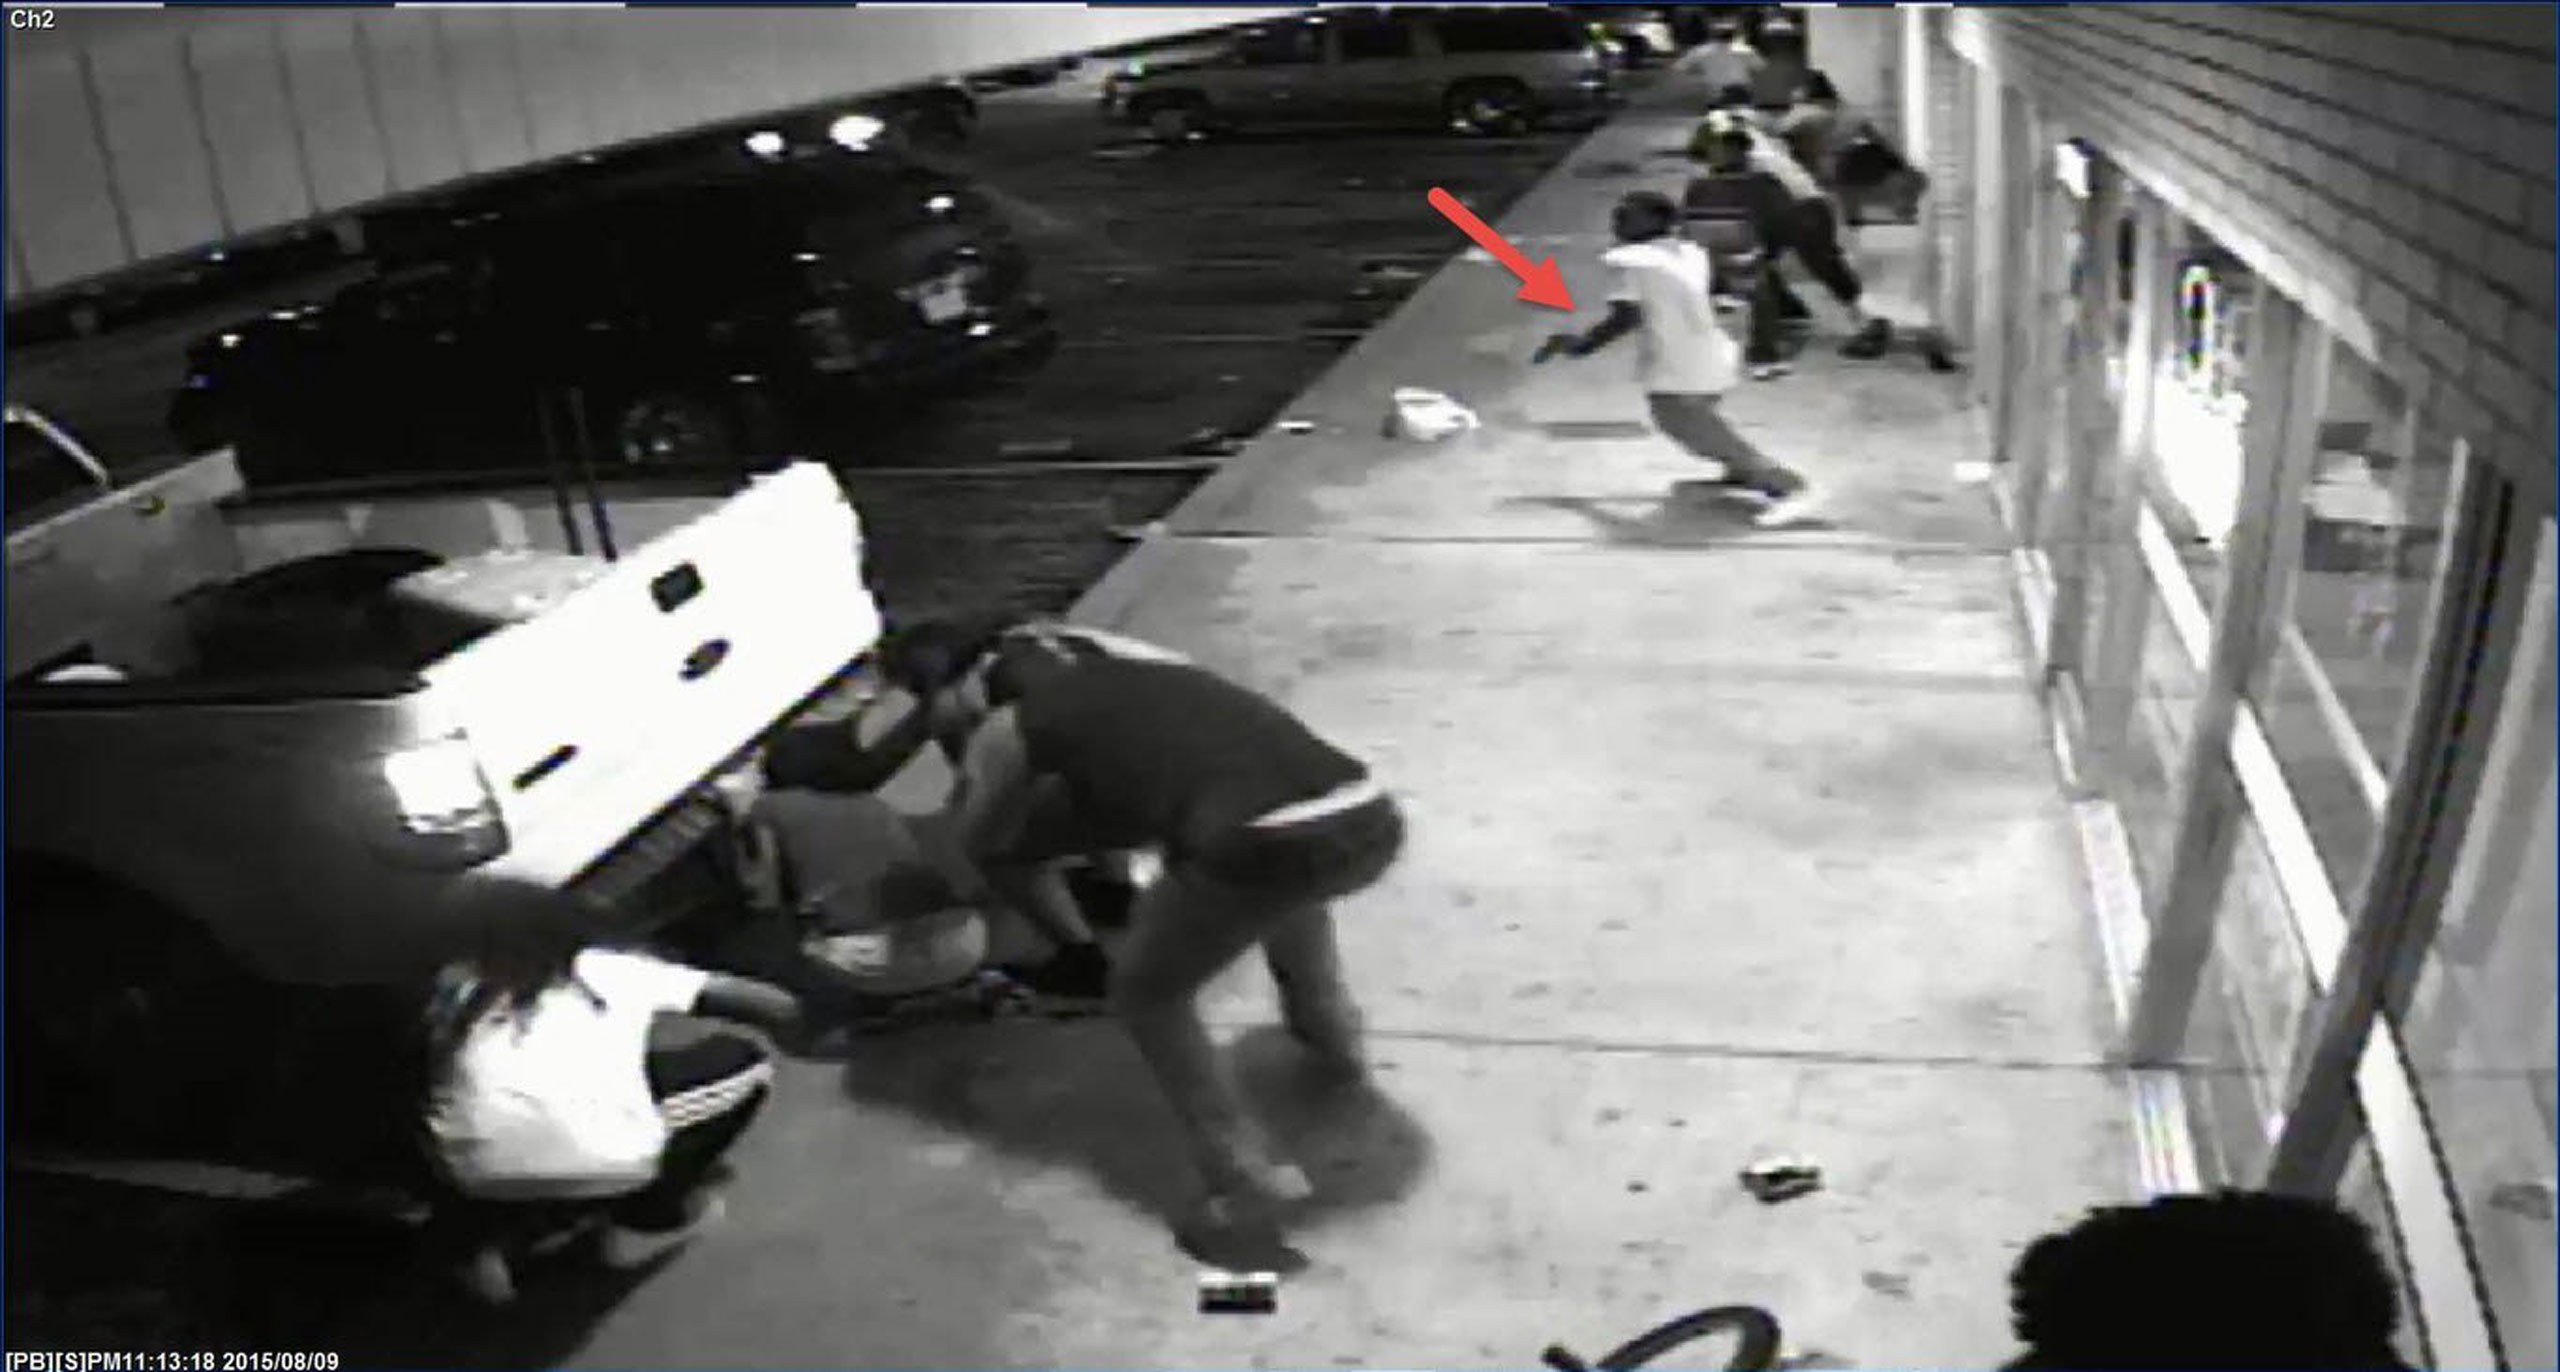 In this handout provided by the St. Louis County Police Department, video surveillance appears to show Tyrone Harris Jr. grab a handgun once shots are fired during the protest in the W. Florissant corridor, prior to the officer involved shooting in St. Louis, Mo., on August 9, 2015 .